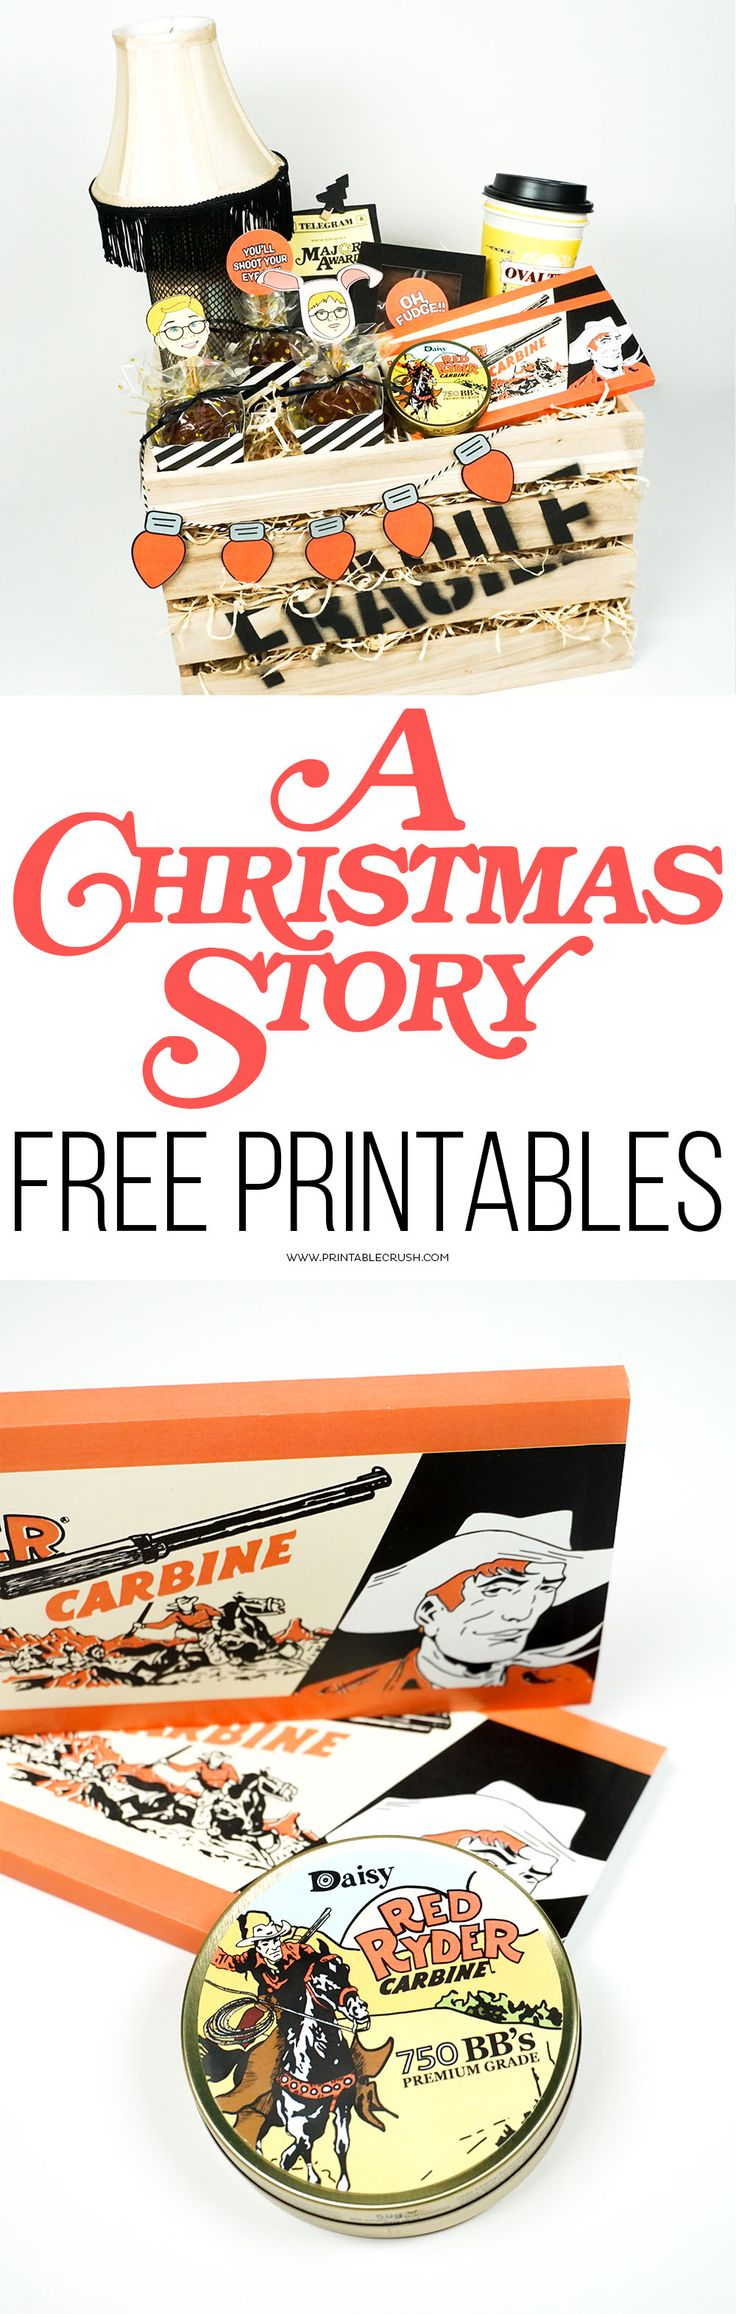 Download A Christmas Story FREE Printables to use at parties or for creative Christmas gifts. Includes 8 designs, with PDF and PNG versions for Cricut use!